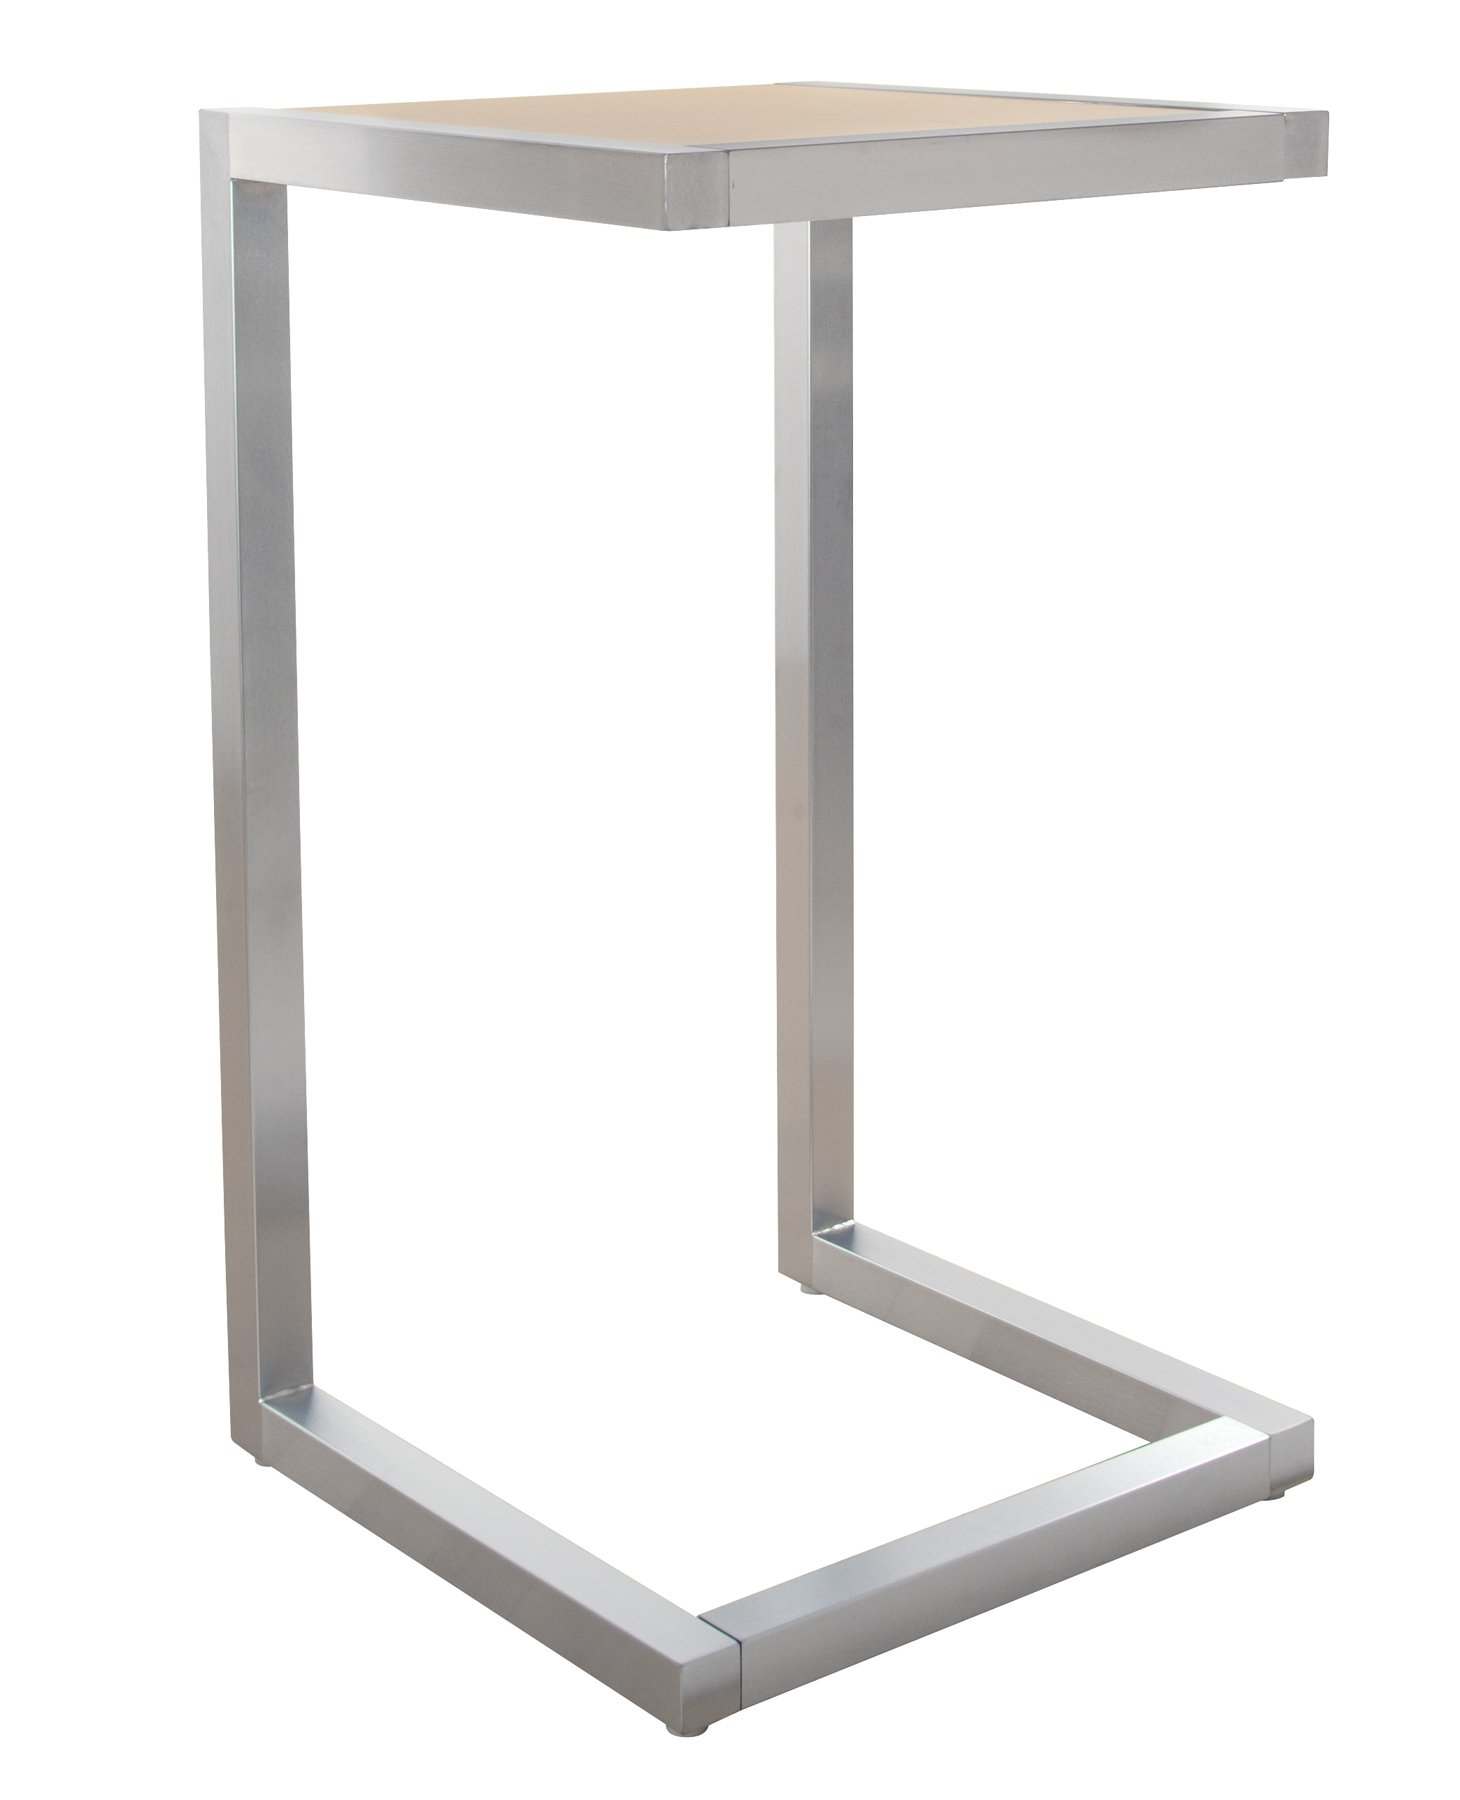 Econoco T504SC-H Pedestal Table, 24'' Length x 24'' Width x 42'' Height